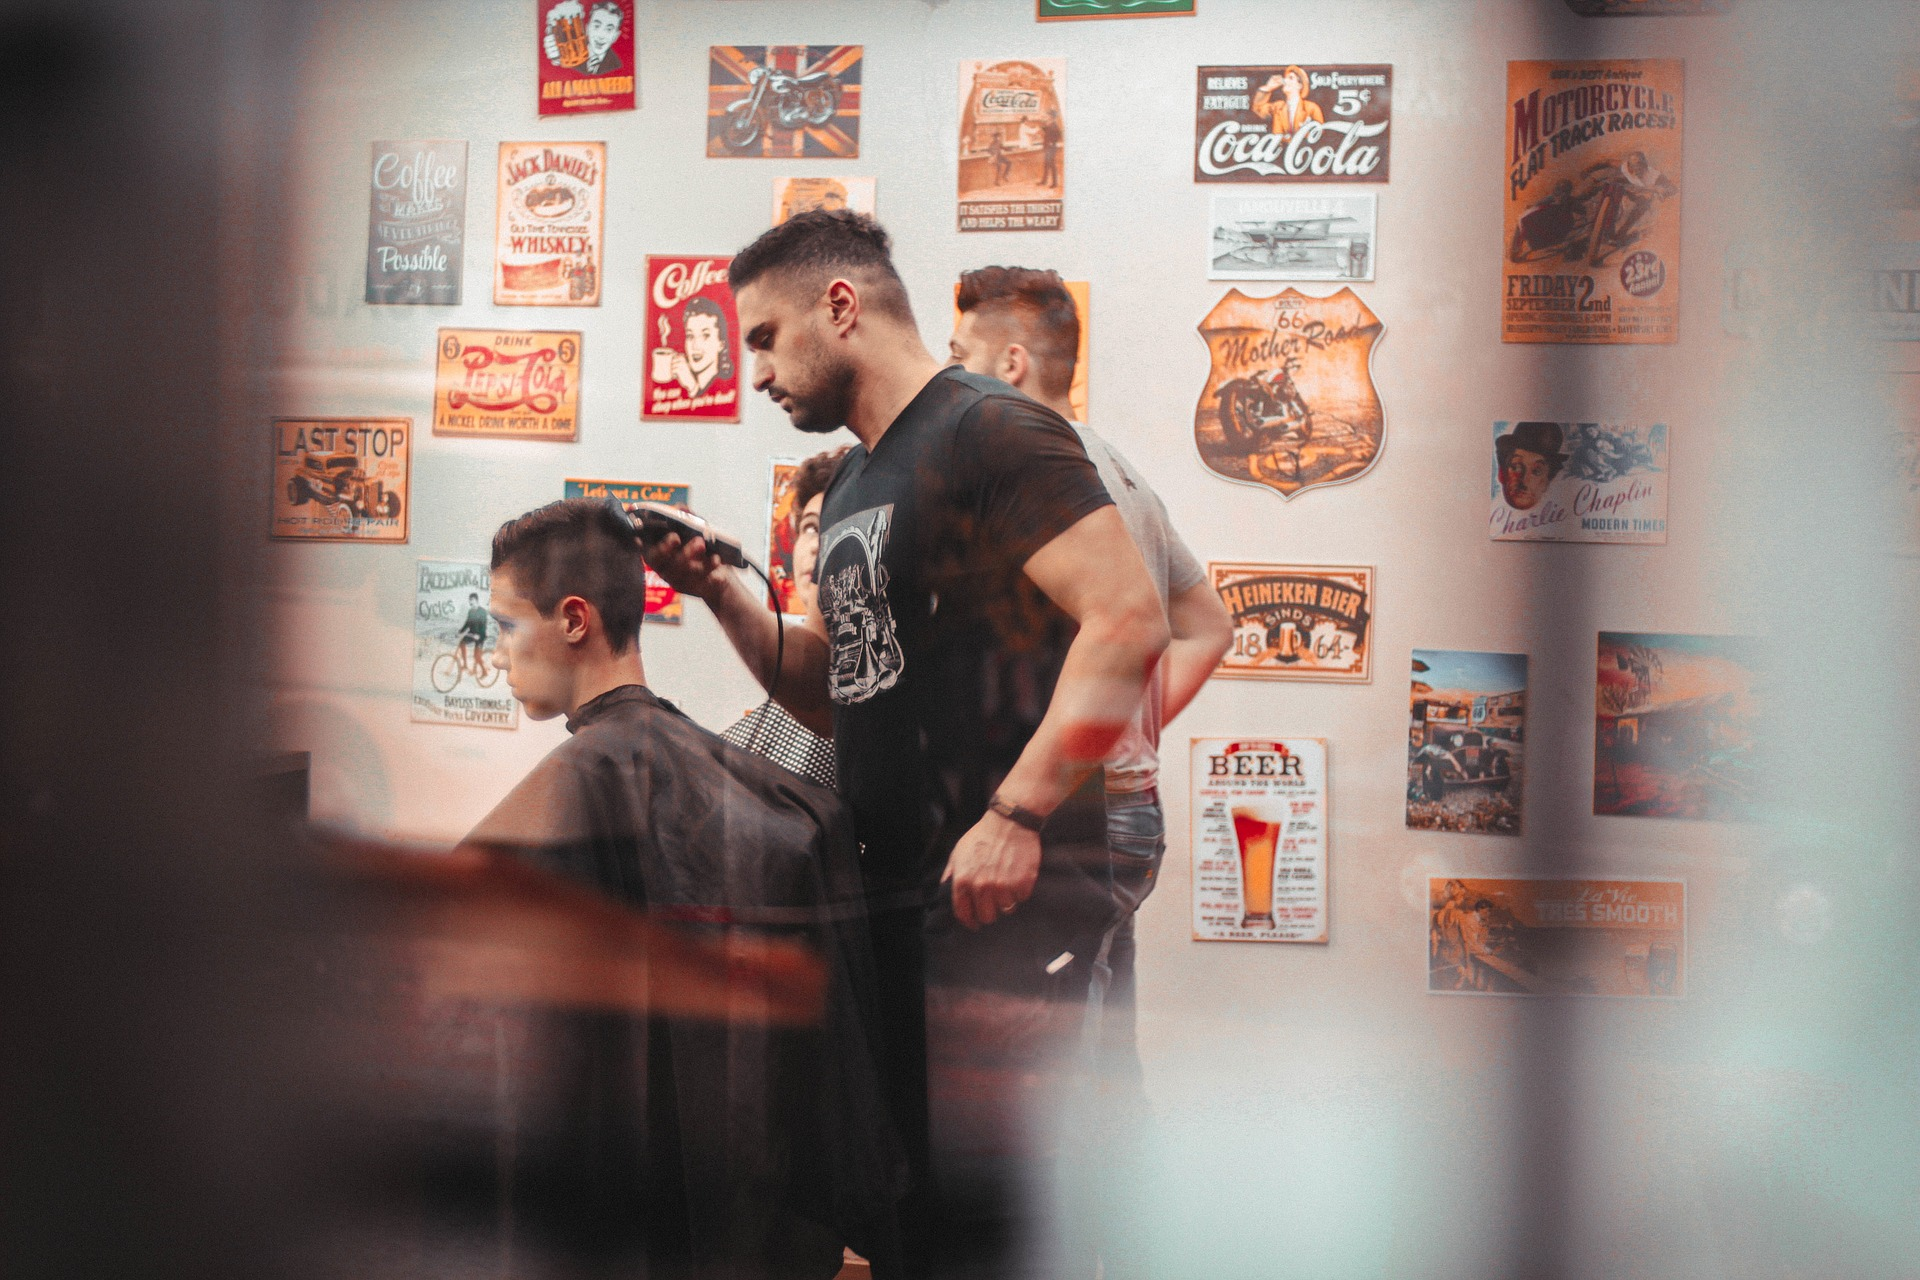 An image of a barber cutting hair